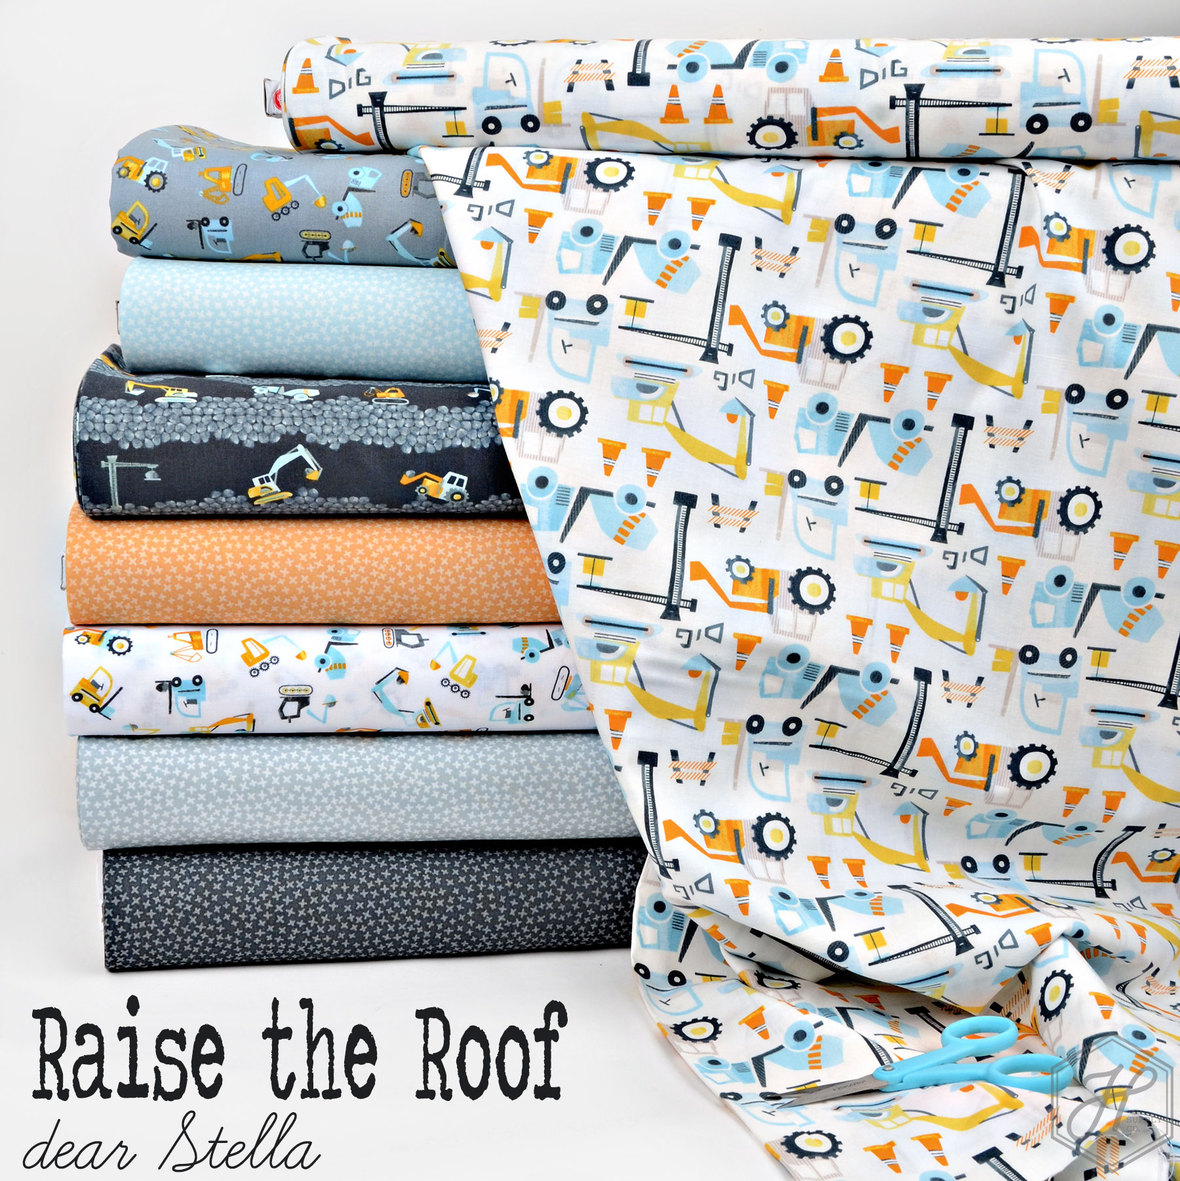 Raise-the-Roof-Fabric-Poster-Dear-Stella-at-Hawthorne-Supply-Co